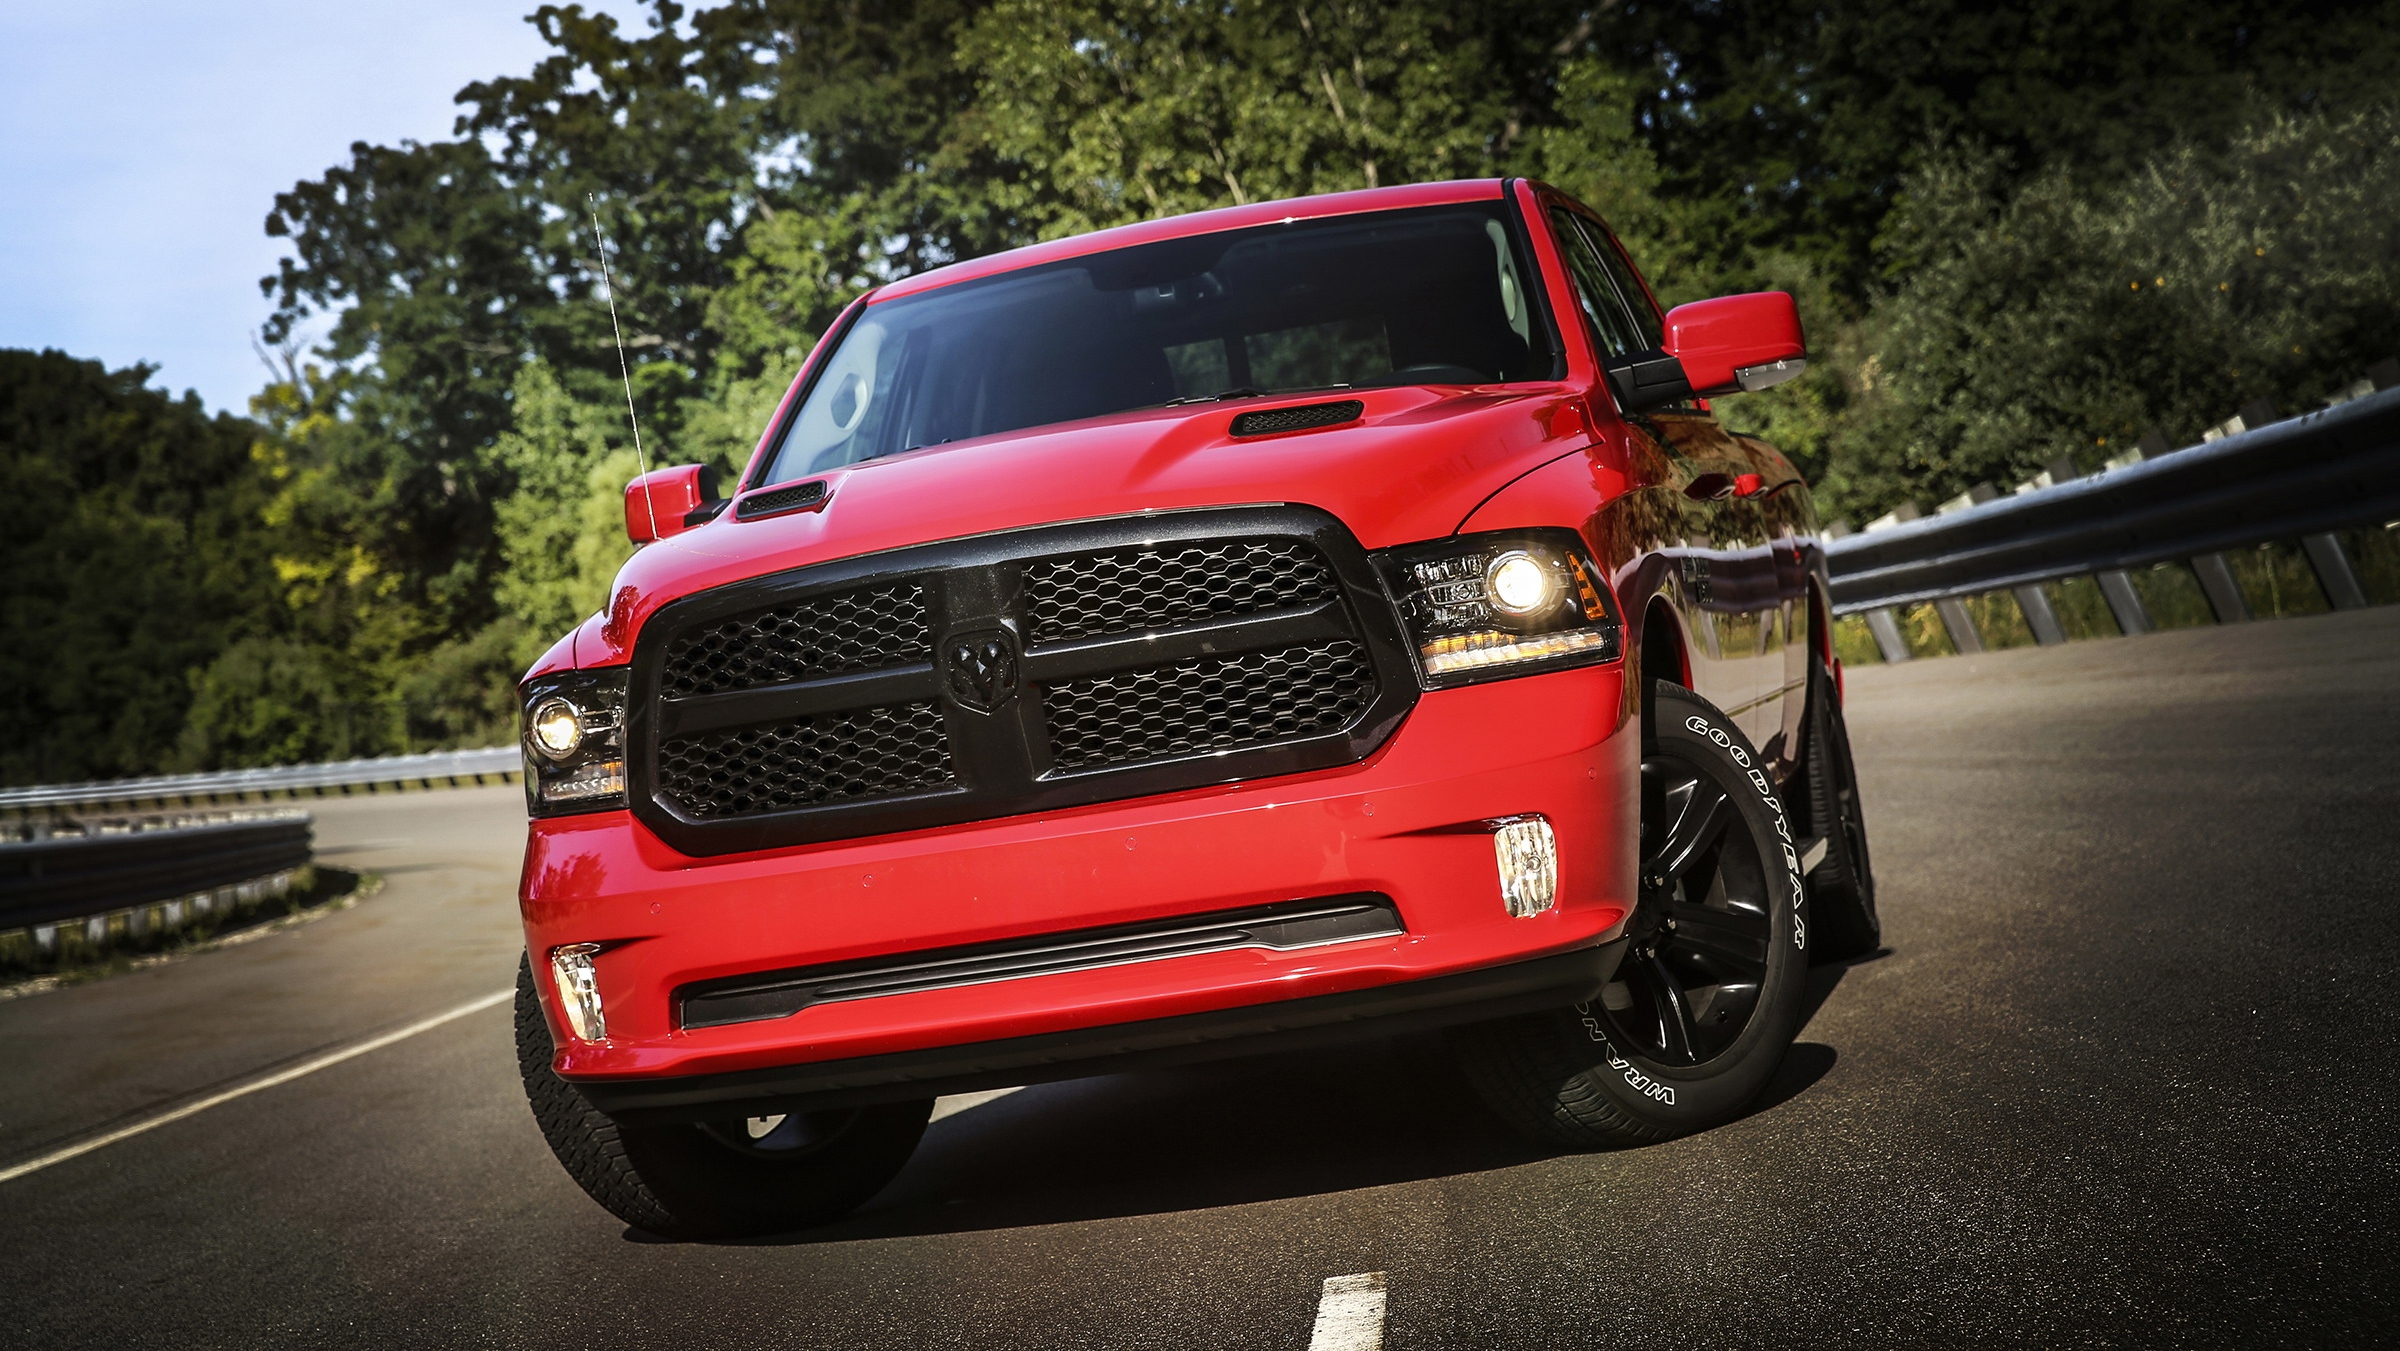 2017 ram 1500 night package review gallery top speed. Black Bedroom Furniture Sets. Home Design Ideas